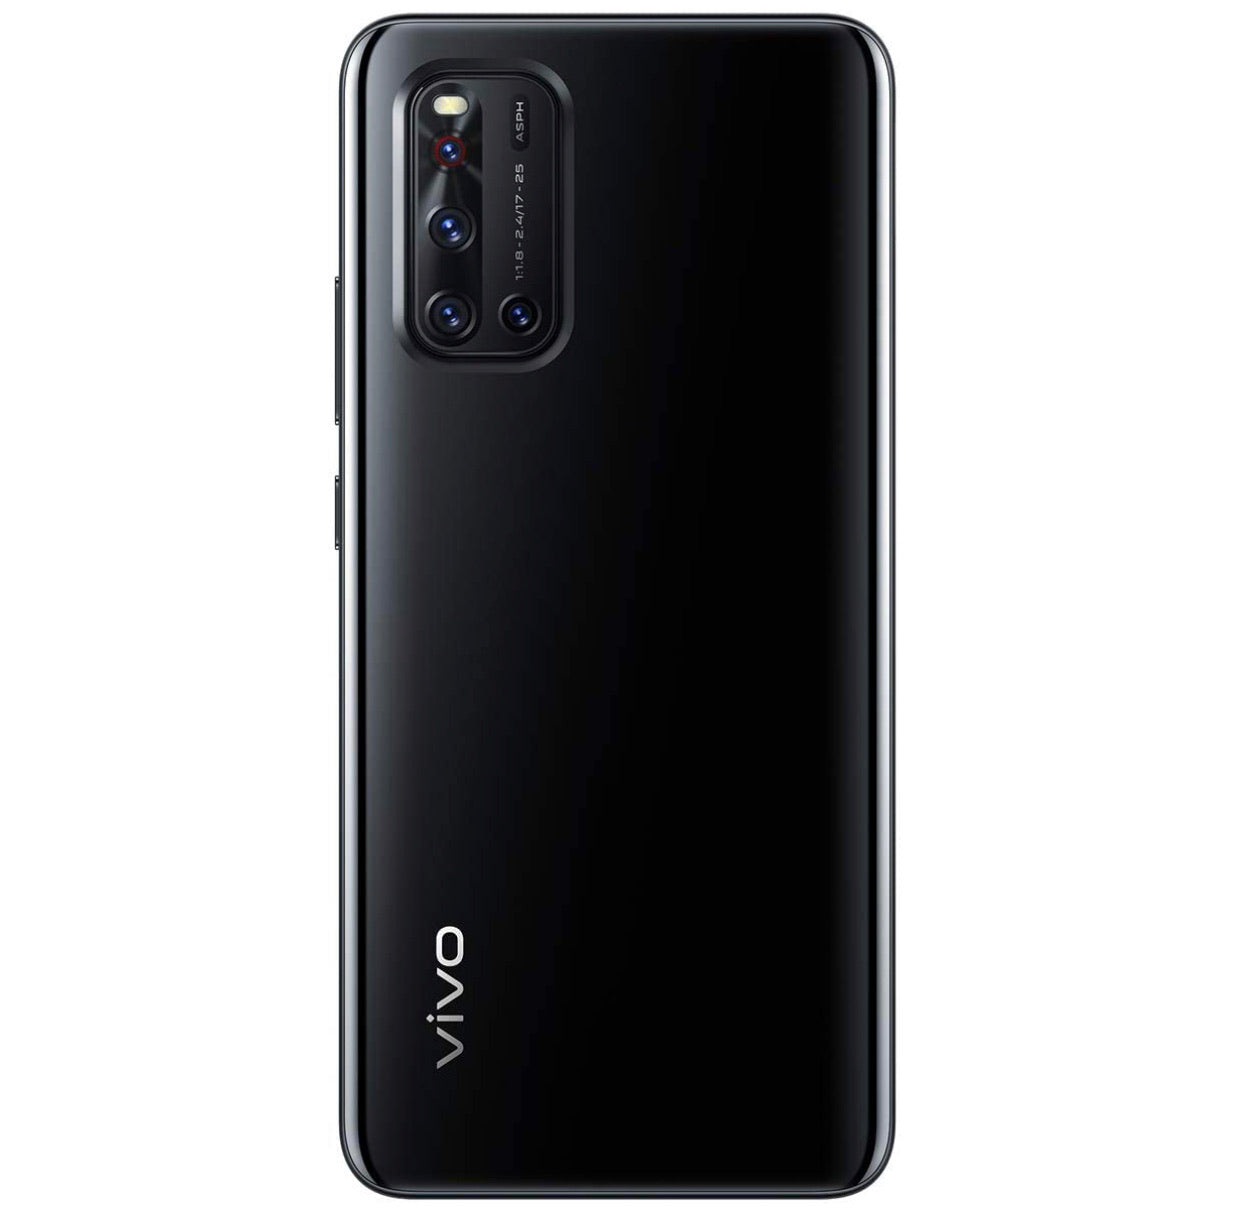 VIVO V19 (8GB RAM, 256 GB Storage) - E MIRA ROAD